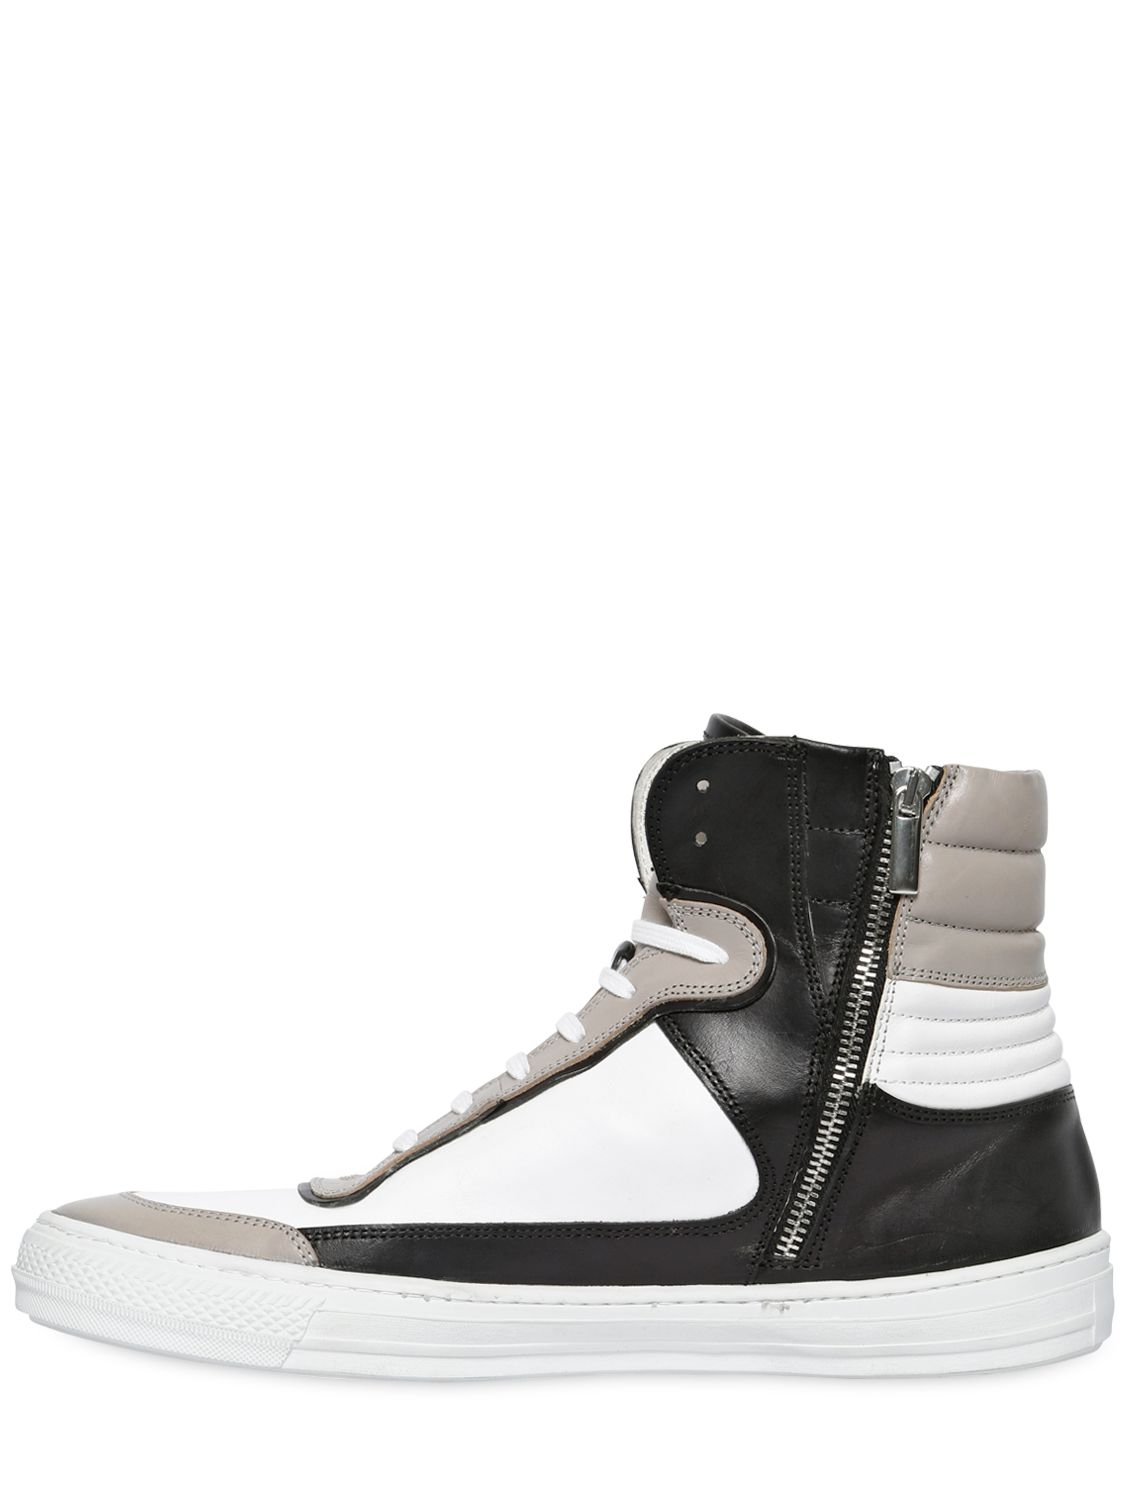 5b2f3e957f3c Diesel Black Gold Leather High Top Sneakers in White for Men - Lyst